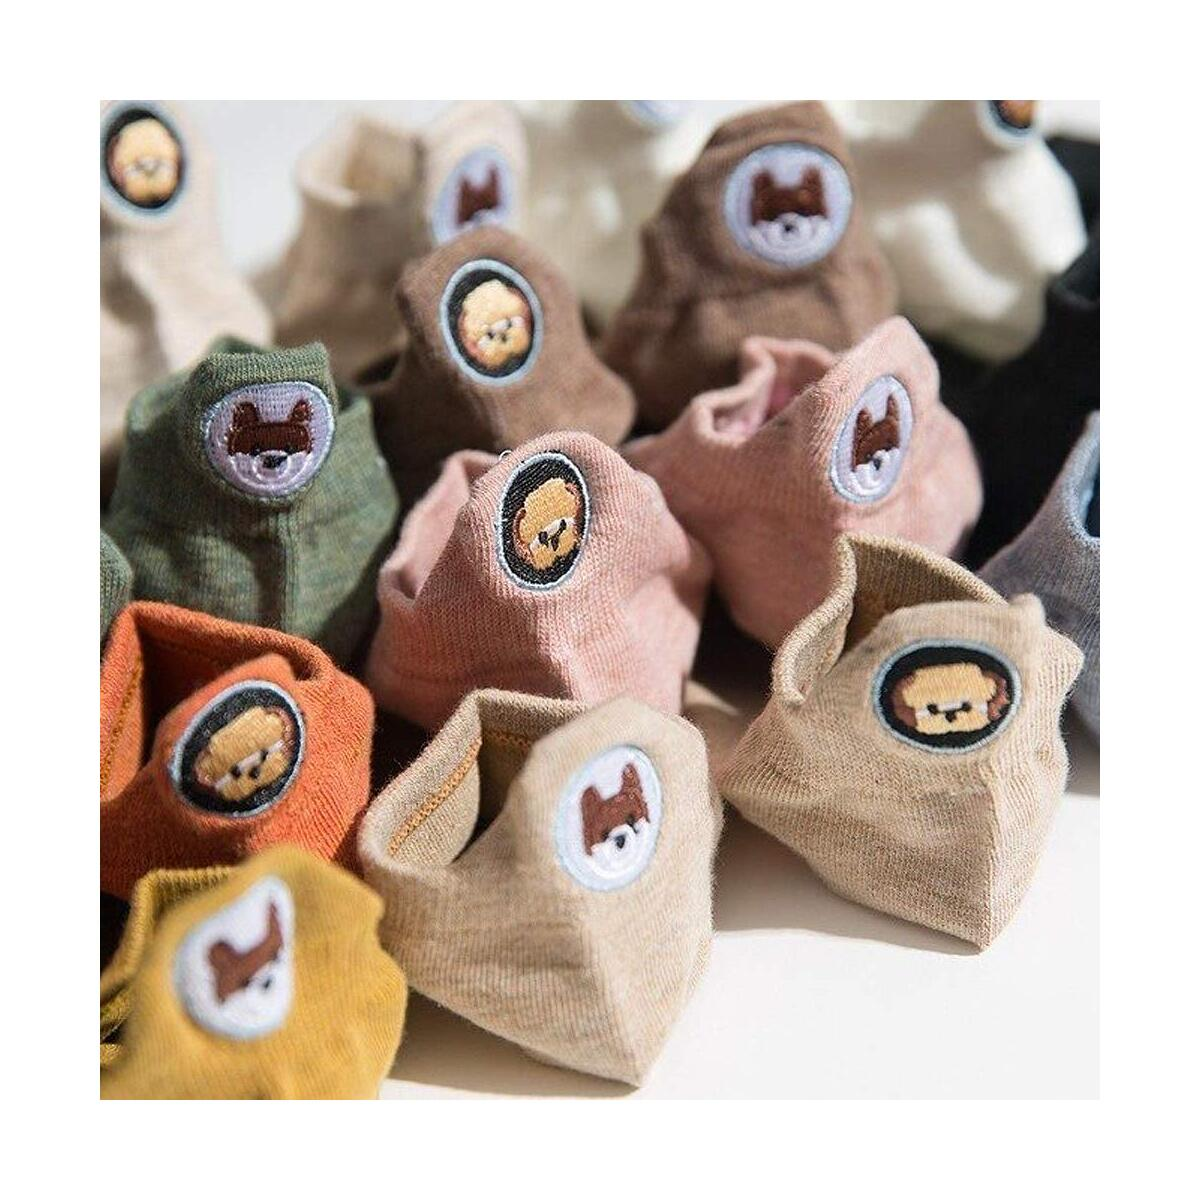 10 PACK Cartoon Puppy Dog Embroidery Cute Women's Ankle No Show Socks - 10 different designs and colors